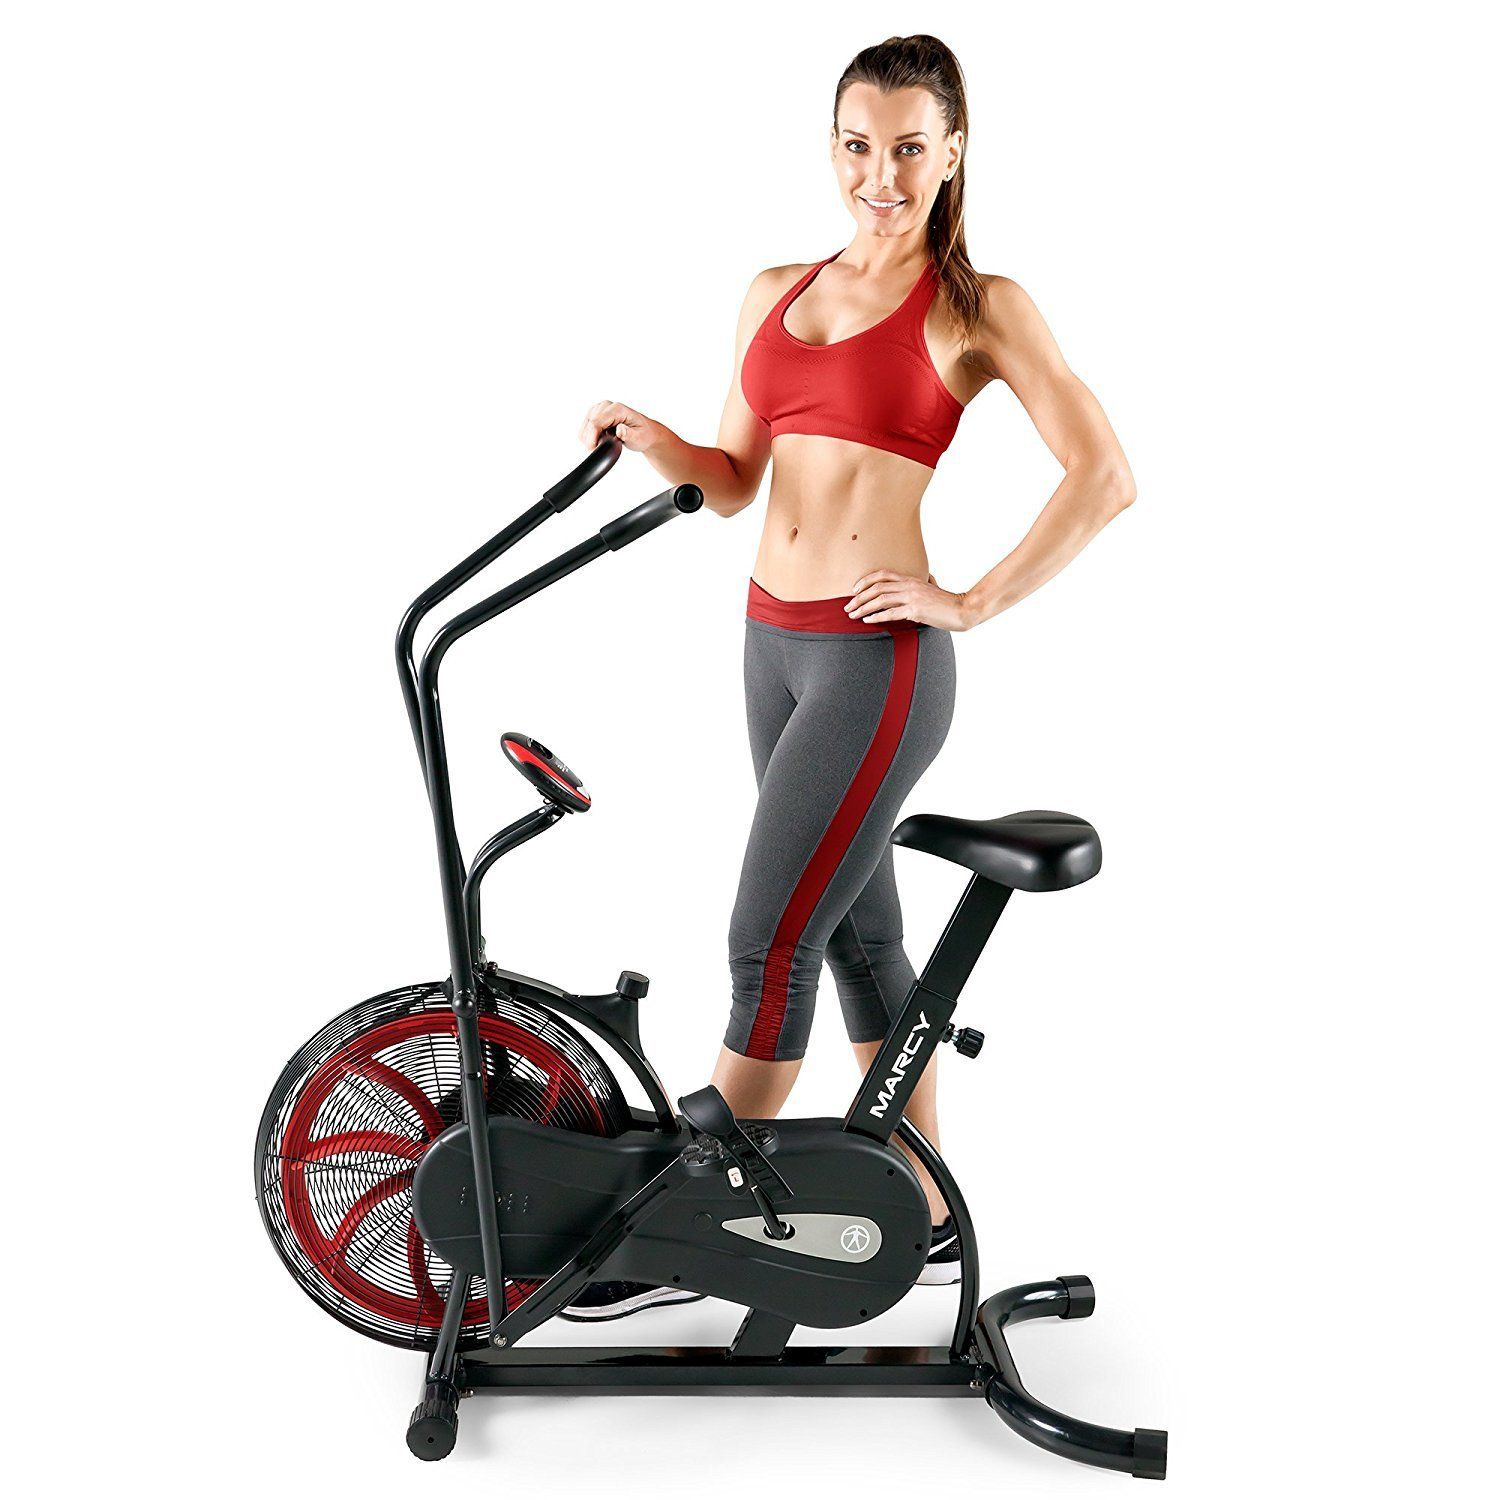 2018 Black Friday & Cyber Monday Fitness Equipment Deals